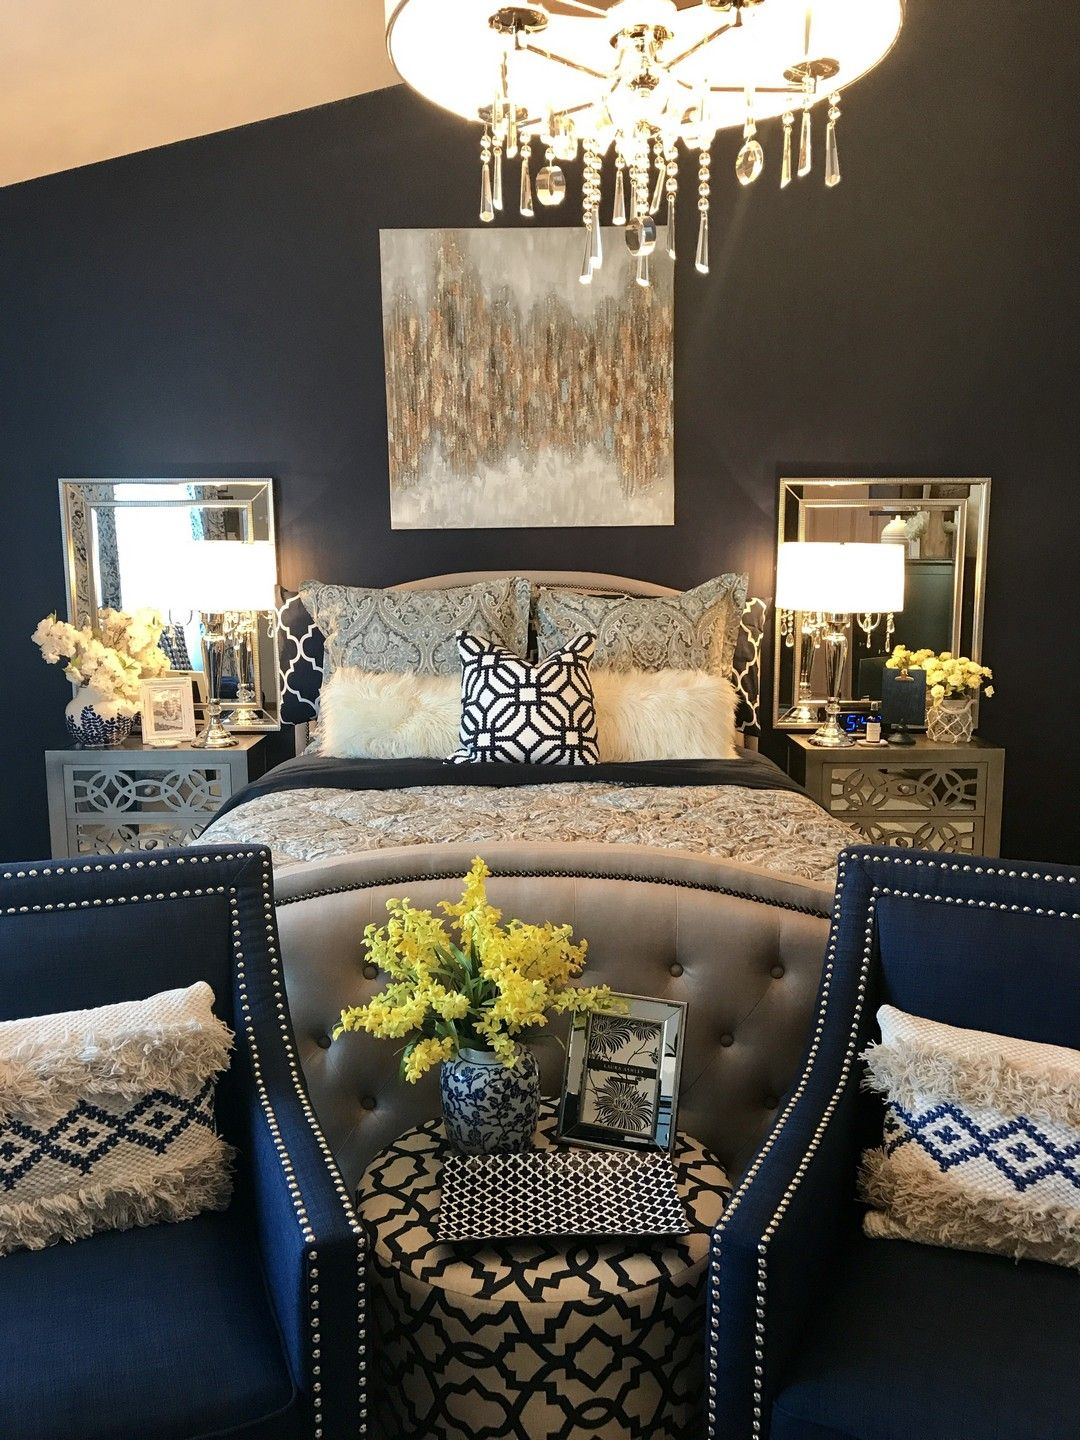 Navy blue interior doors inspirational photos https onechitecture also farmhouse master bedroom decorating ideas in for the home rh pinterest